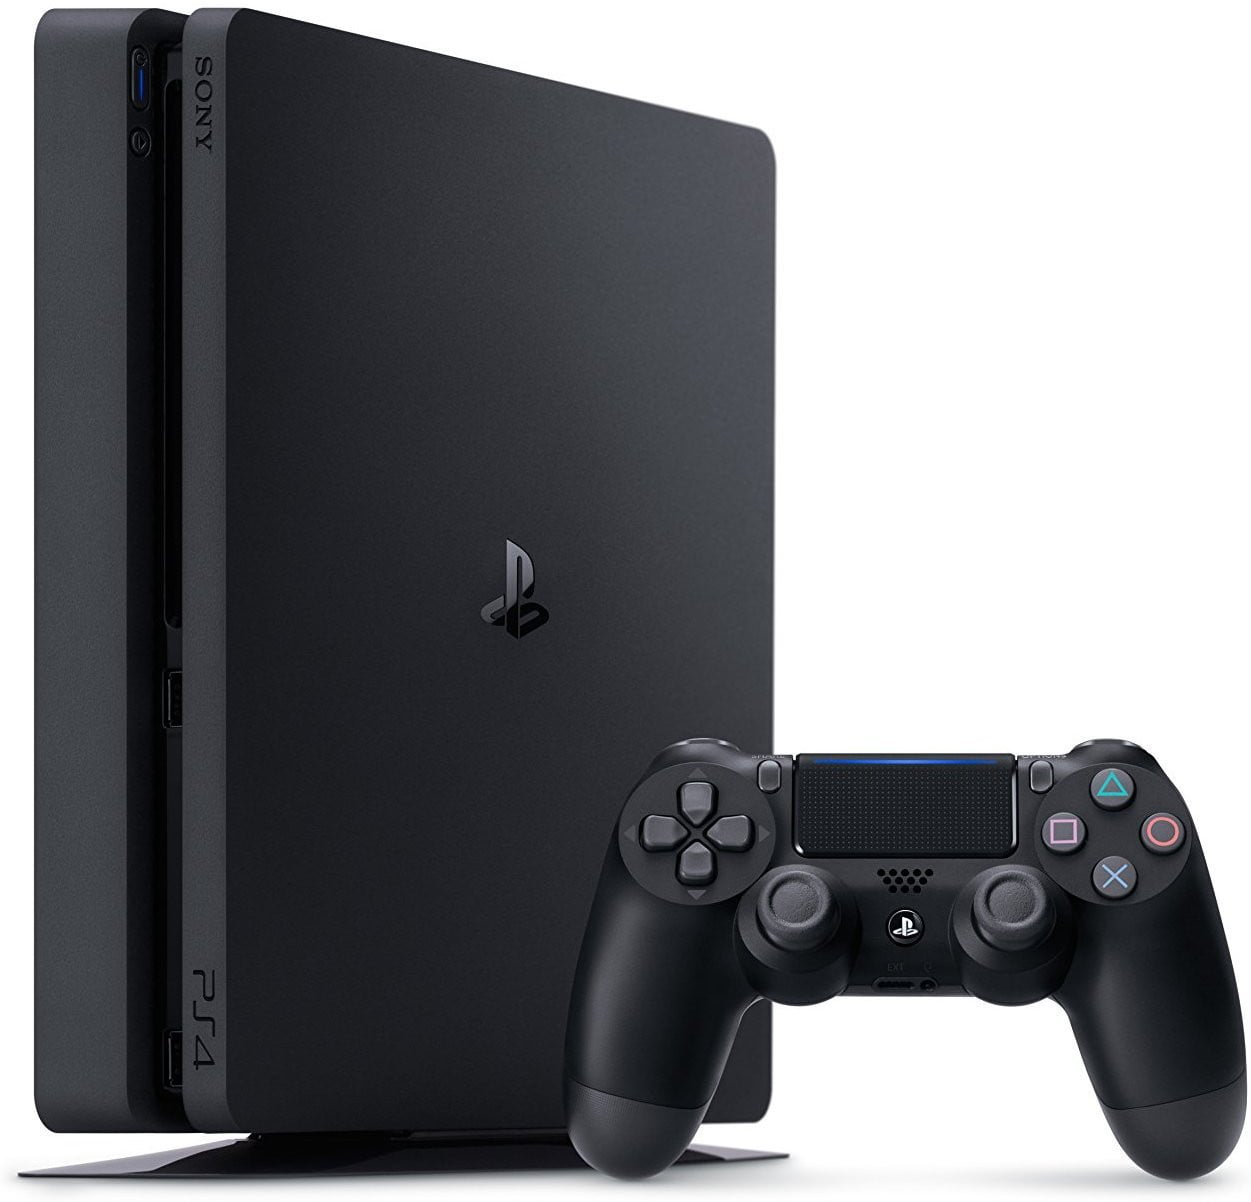 Buy PlayStation 4 (PS4) Slim 1TB Black PS4 Console in Egypt - Shamy Stores